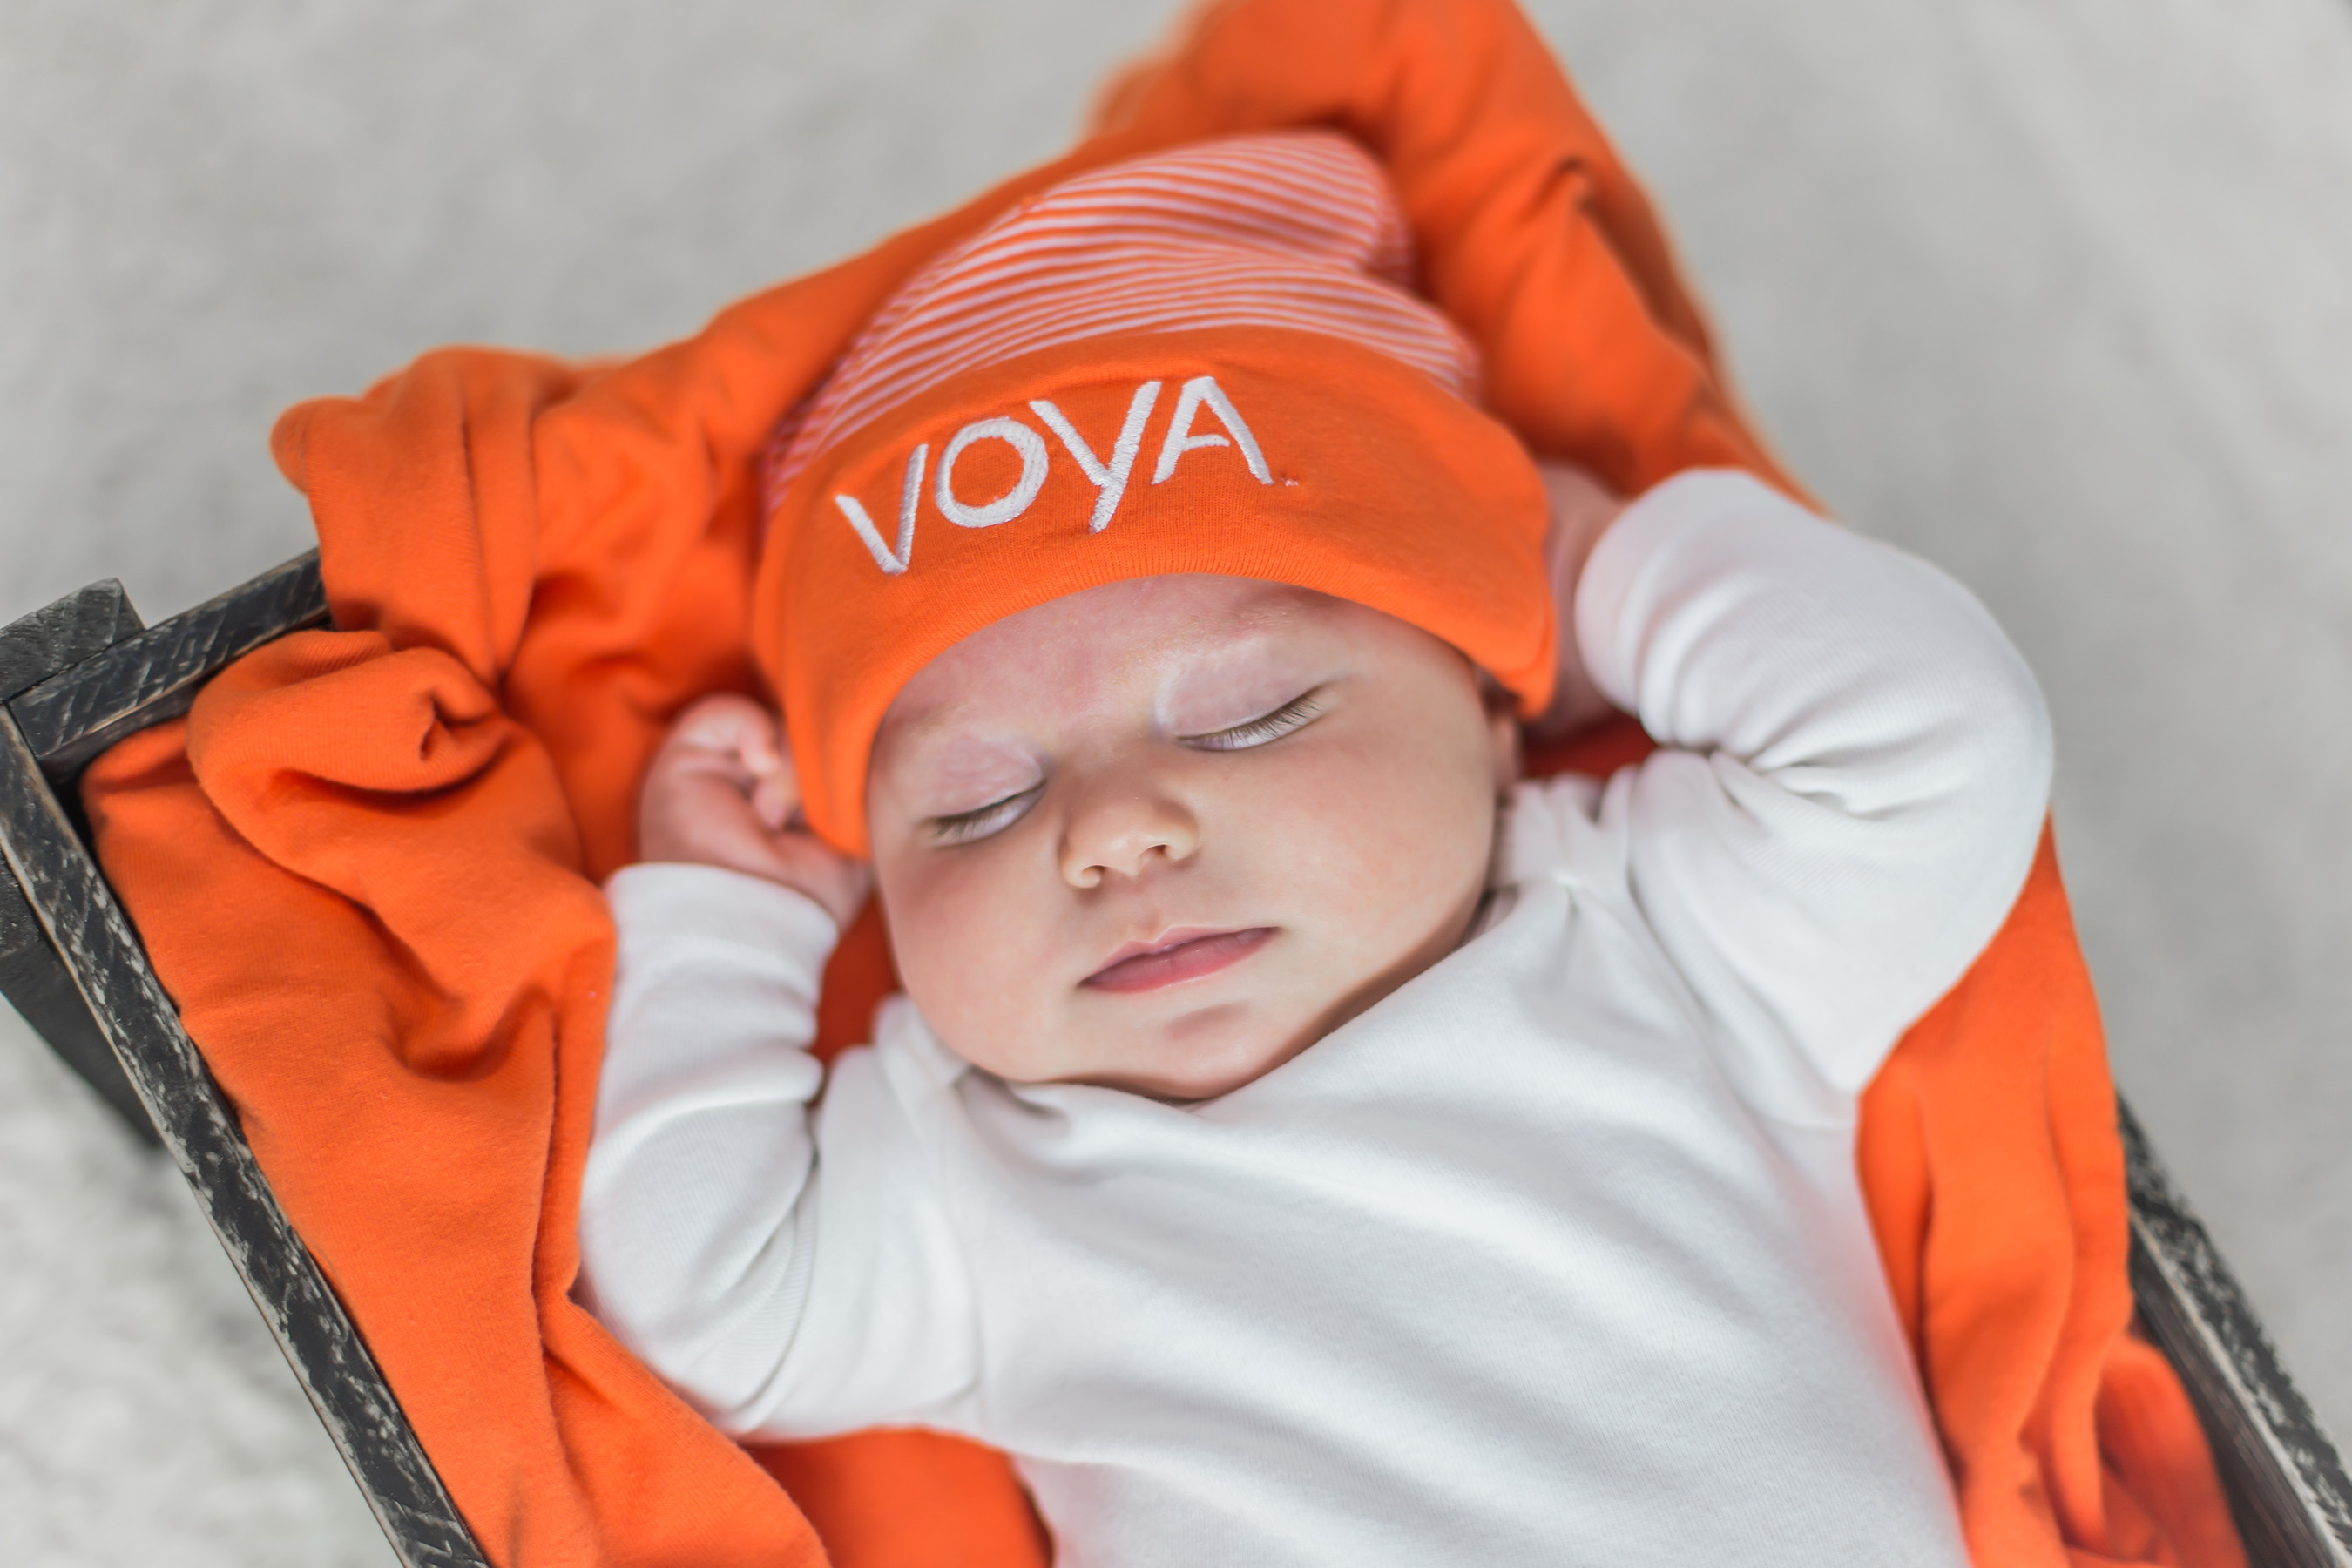 It's never too early – or too late – to start saving for retirement. Voya Financial is helping the next generation on the path to retirement readiness through the Voya Born to Save™ program.